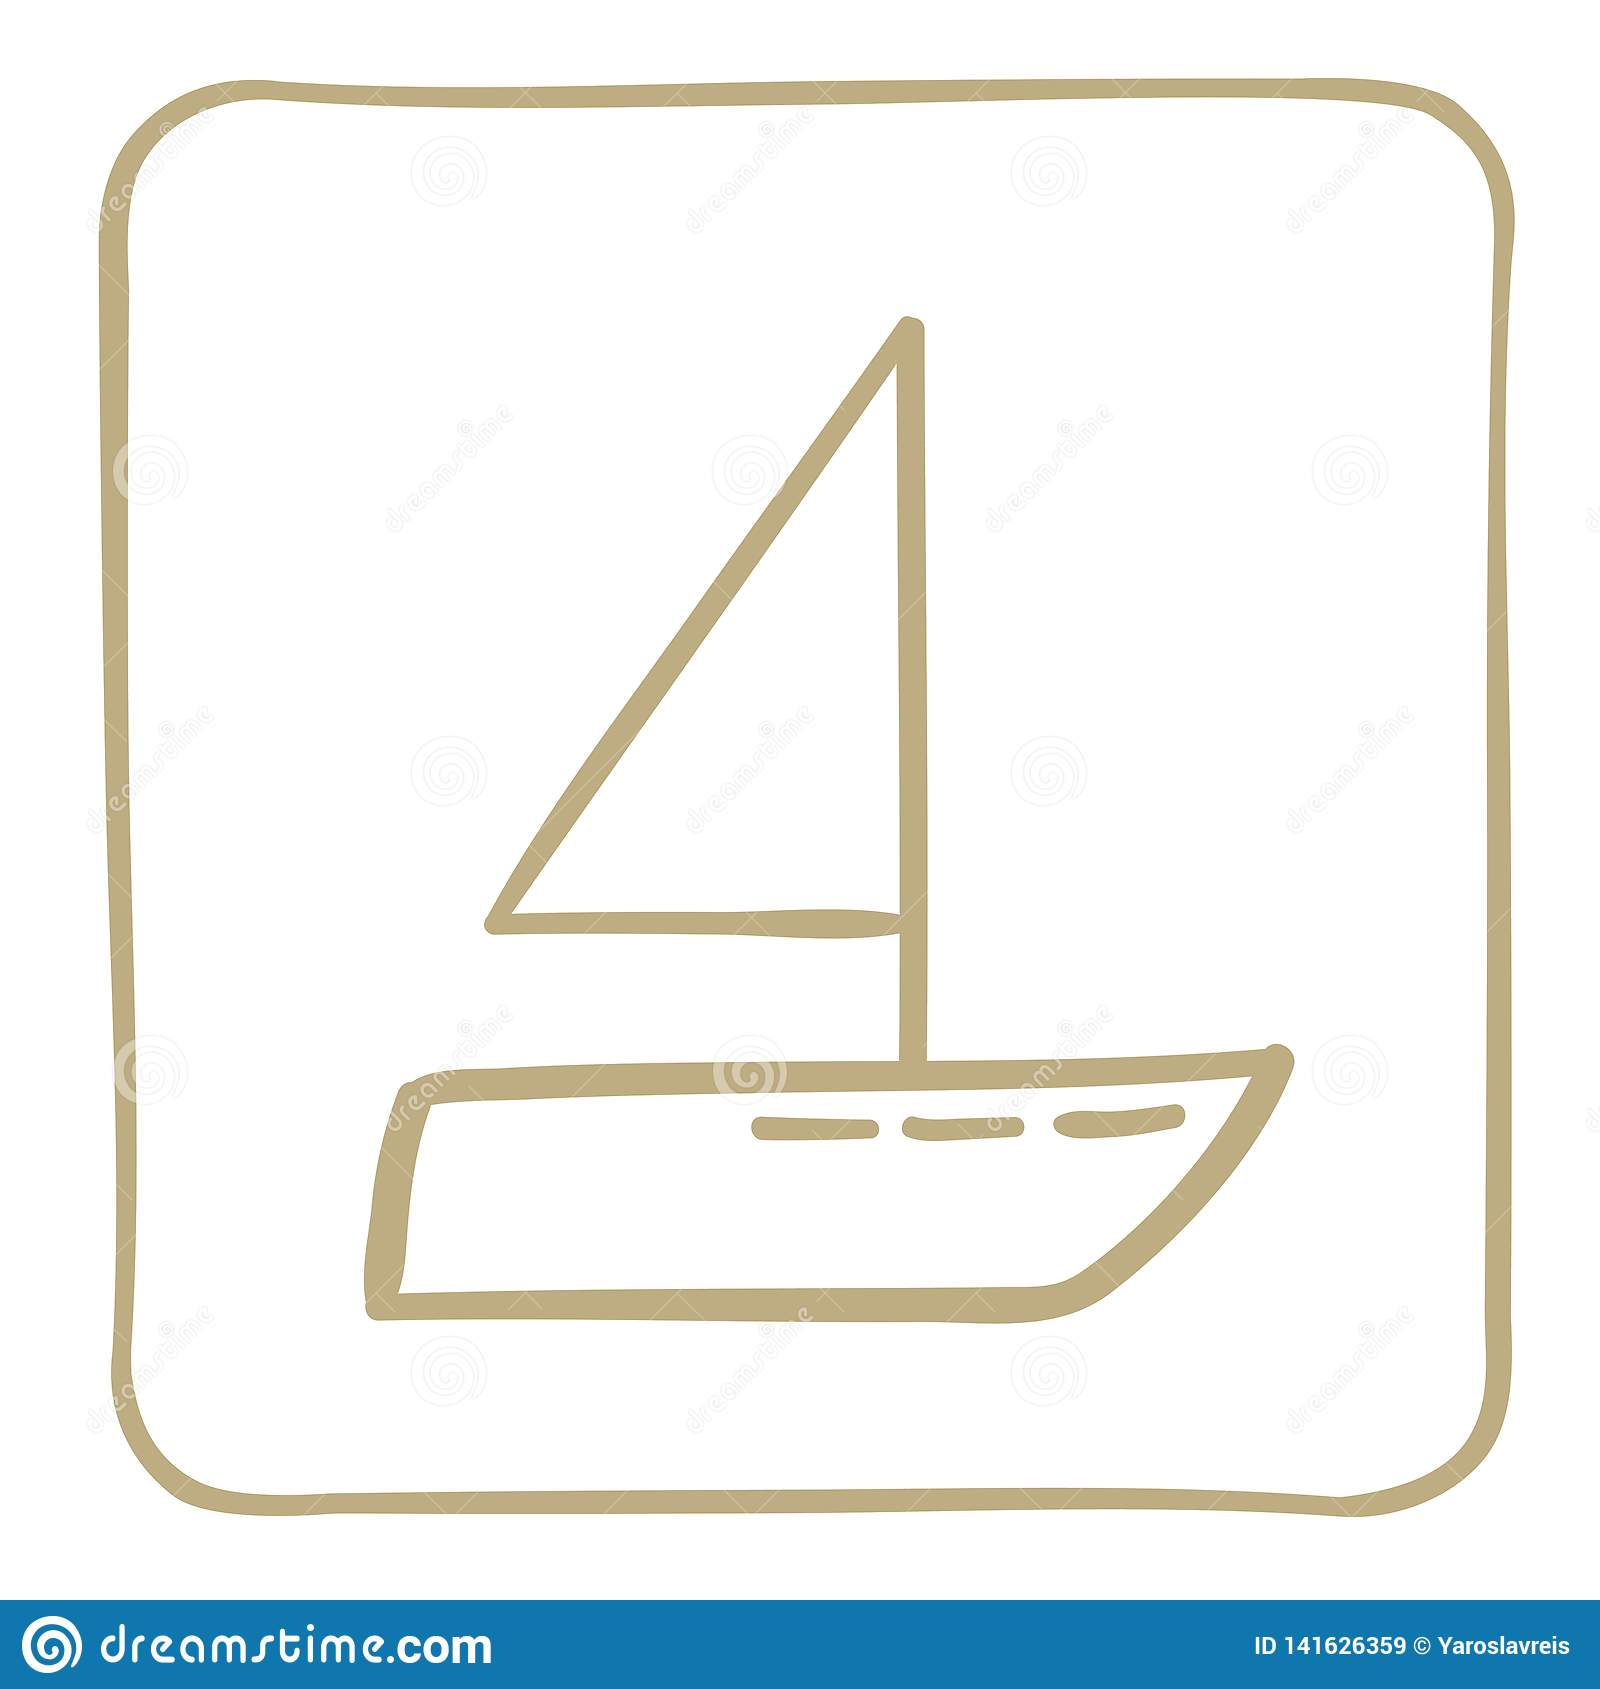 Sailboat - icon in a light brown frame. Vector graphics.